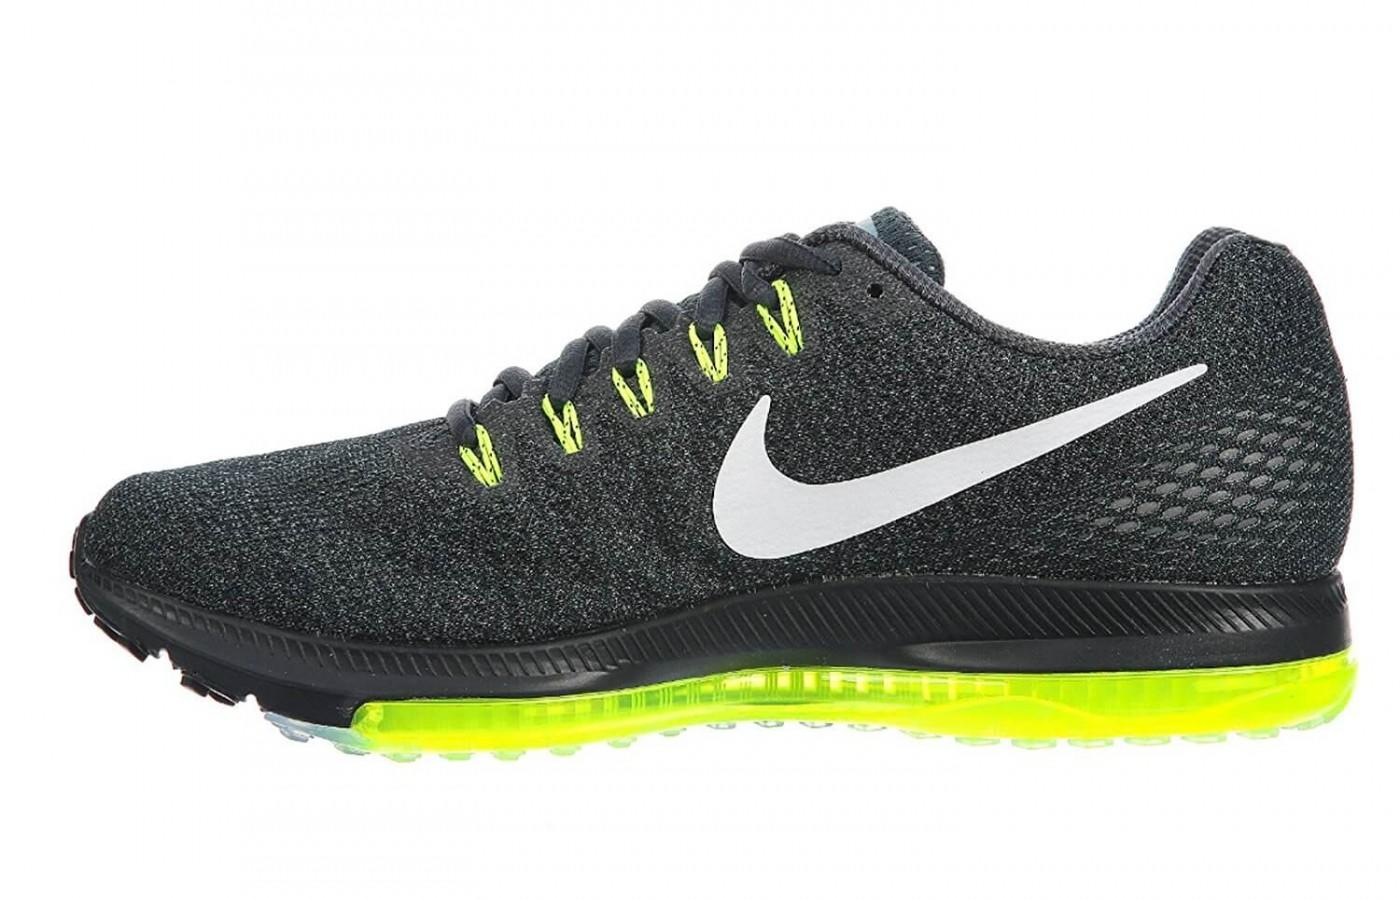 Breathable upper keeps the runner cool and dry.